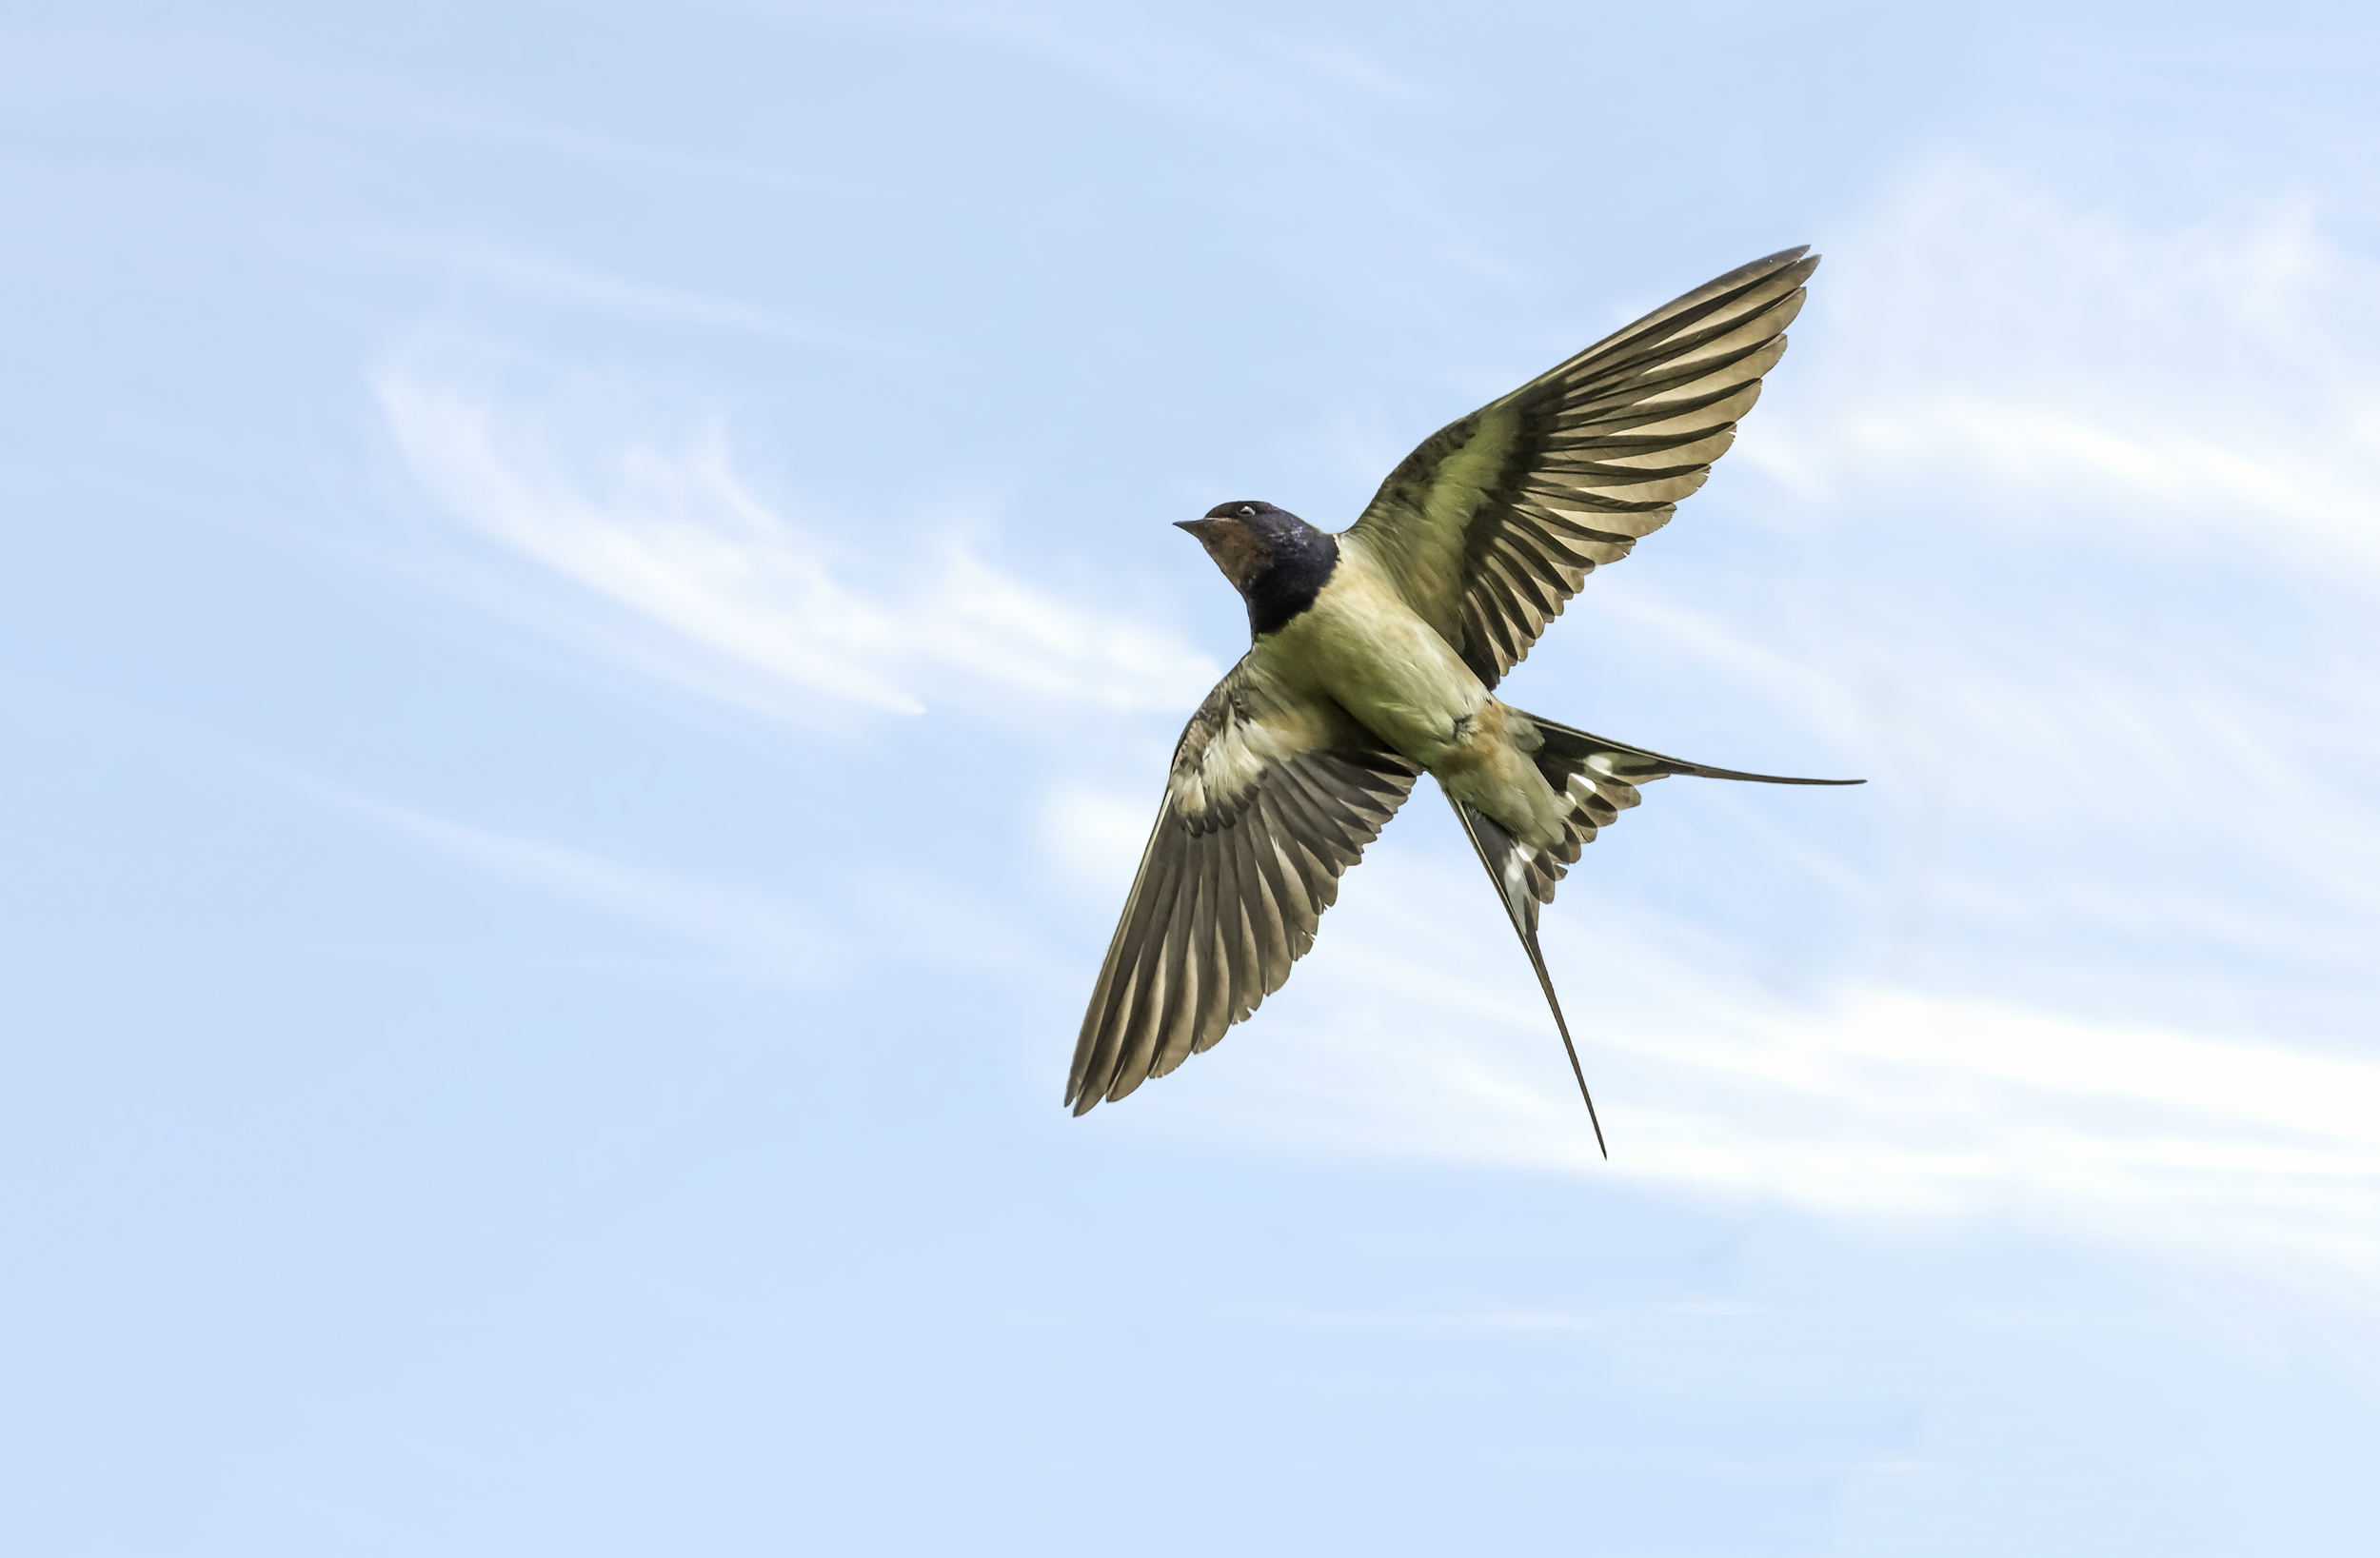 Close up of a Swallow!